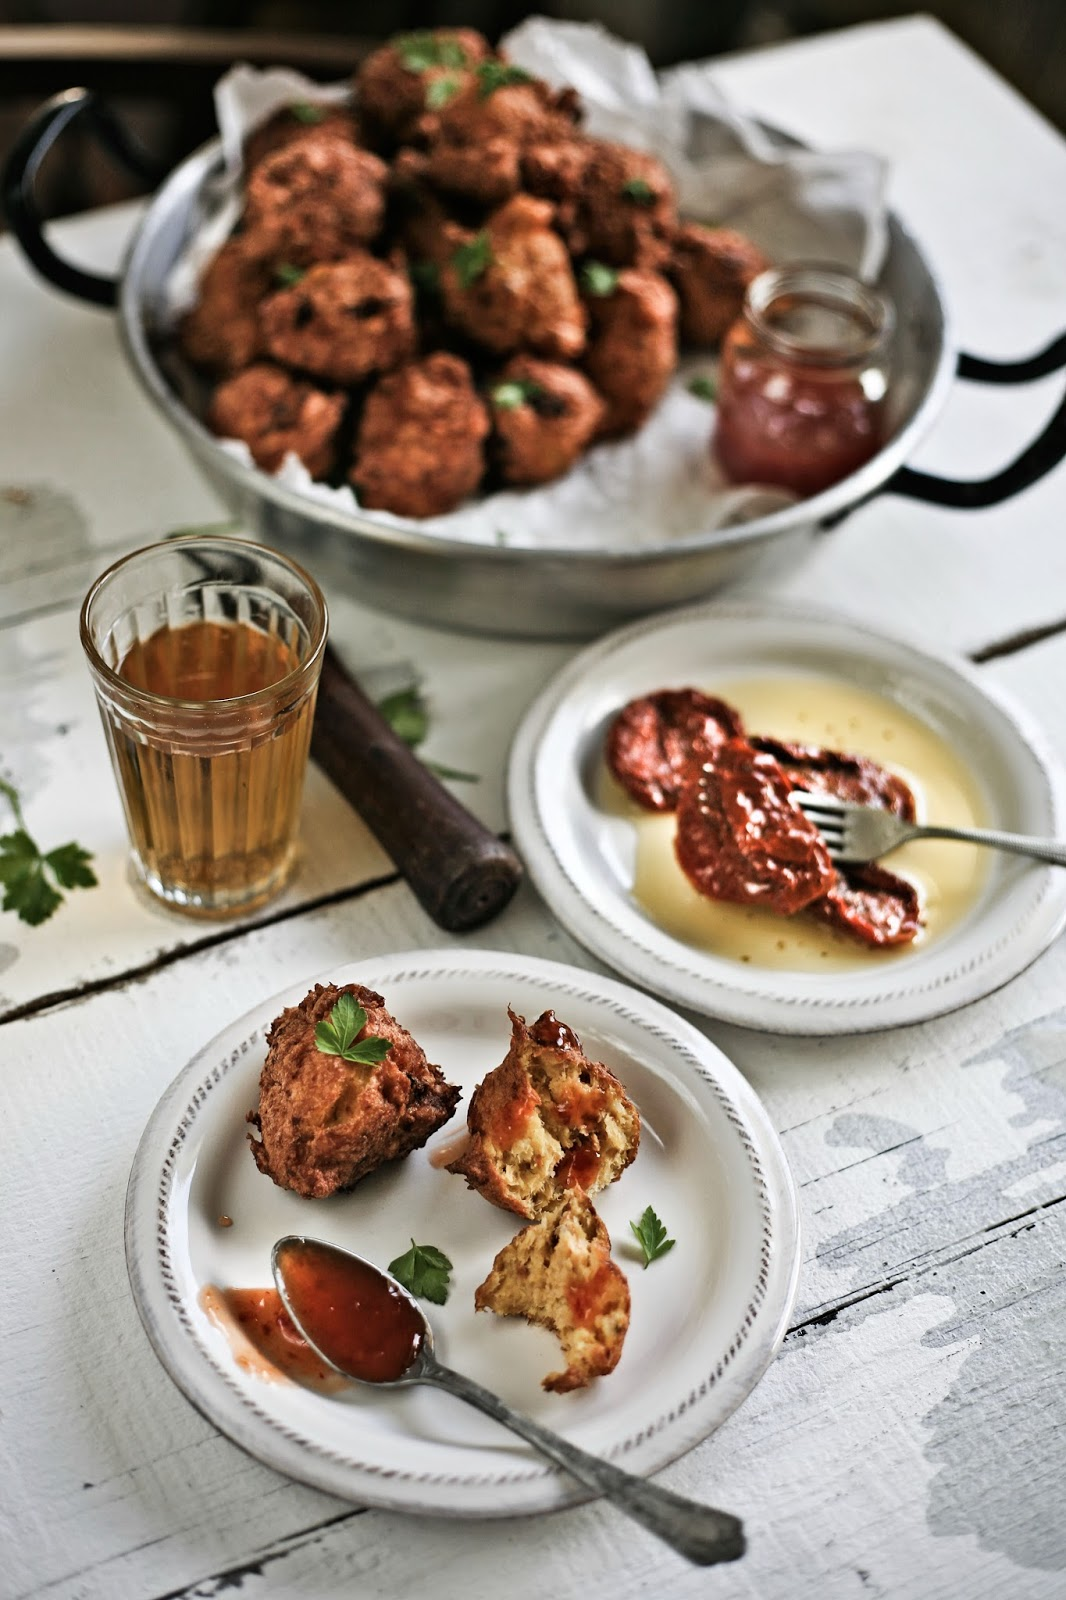 fritos de bacalhau com chili e tomates secos # cod, chili and sun dried tomatoes fritters